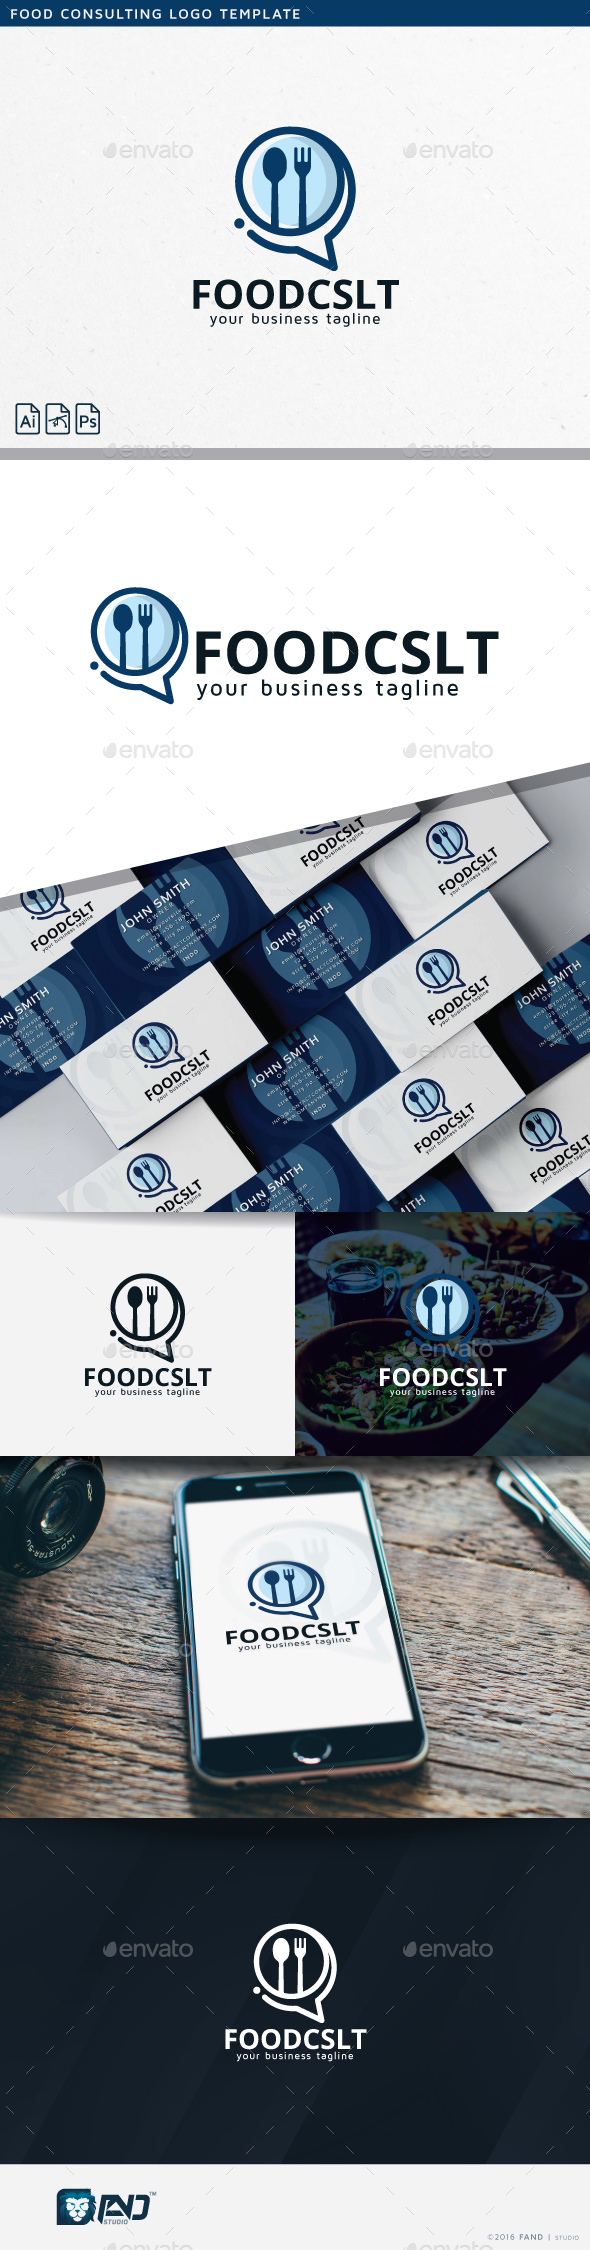 Food Consulting - Food Logo Templates